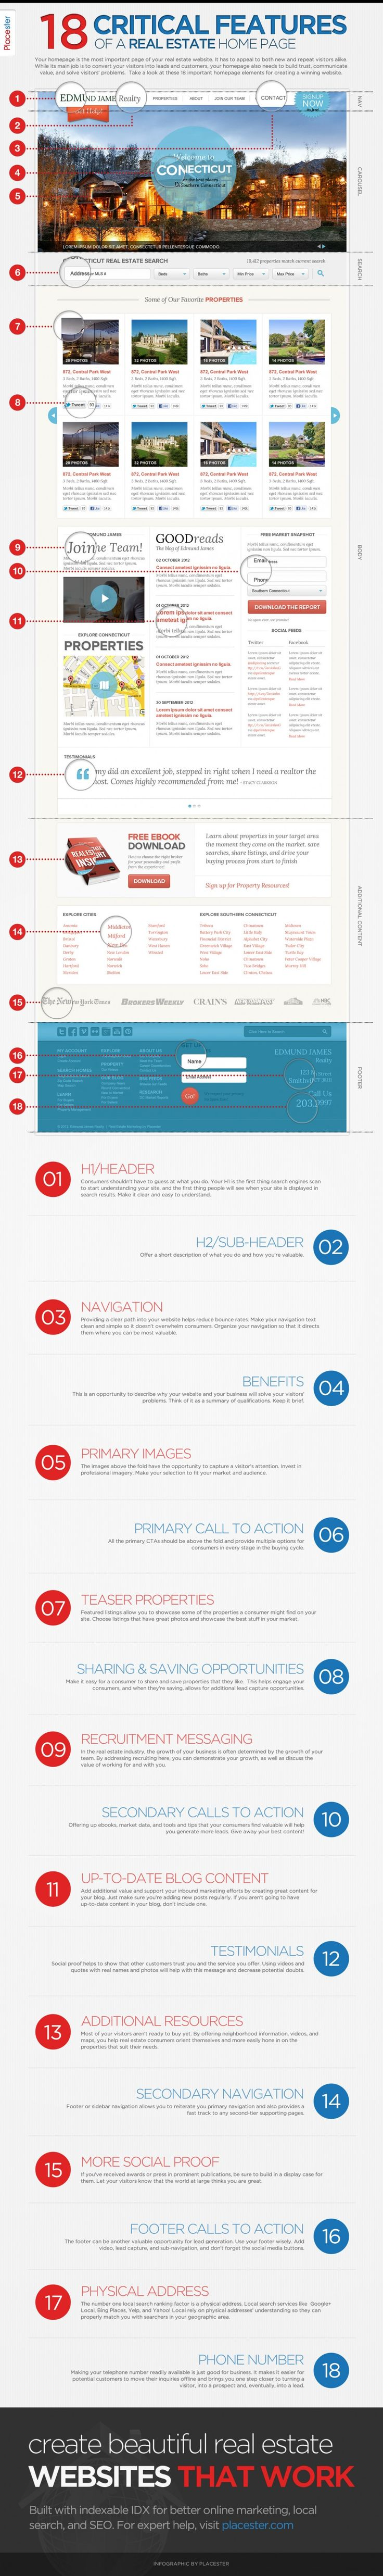 Anatomy of a Real Estate Marketing Website – 18 Crucial Features of a Real Estate Home Page